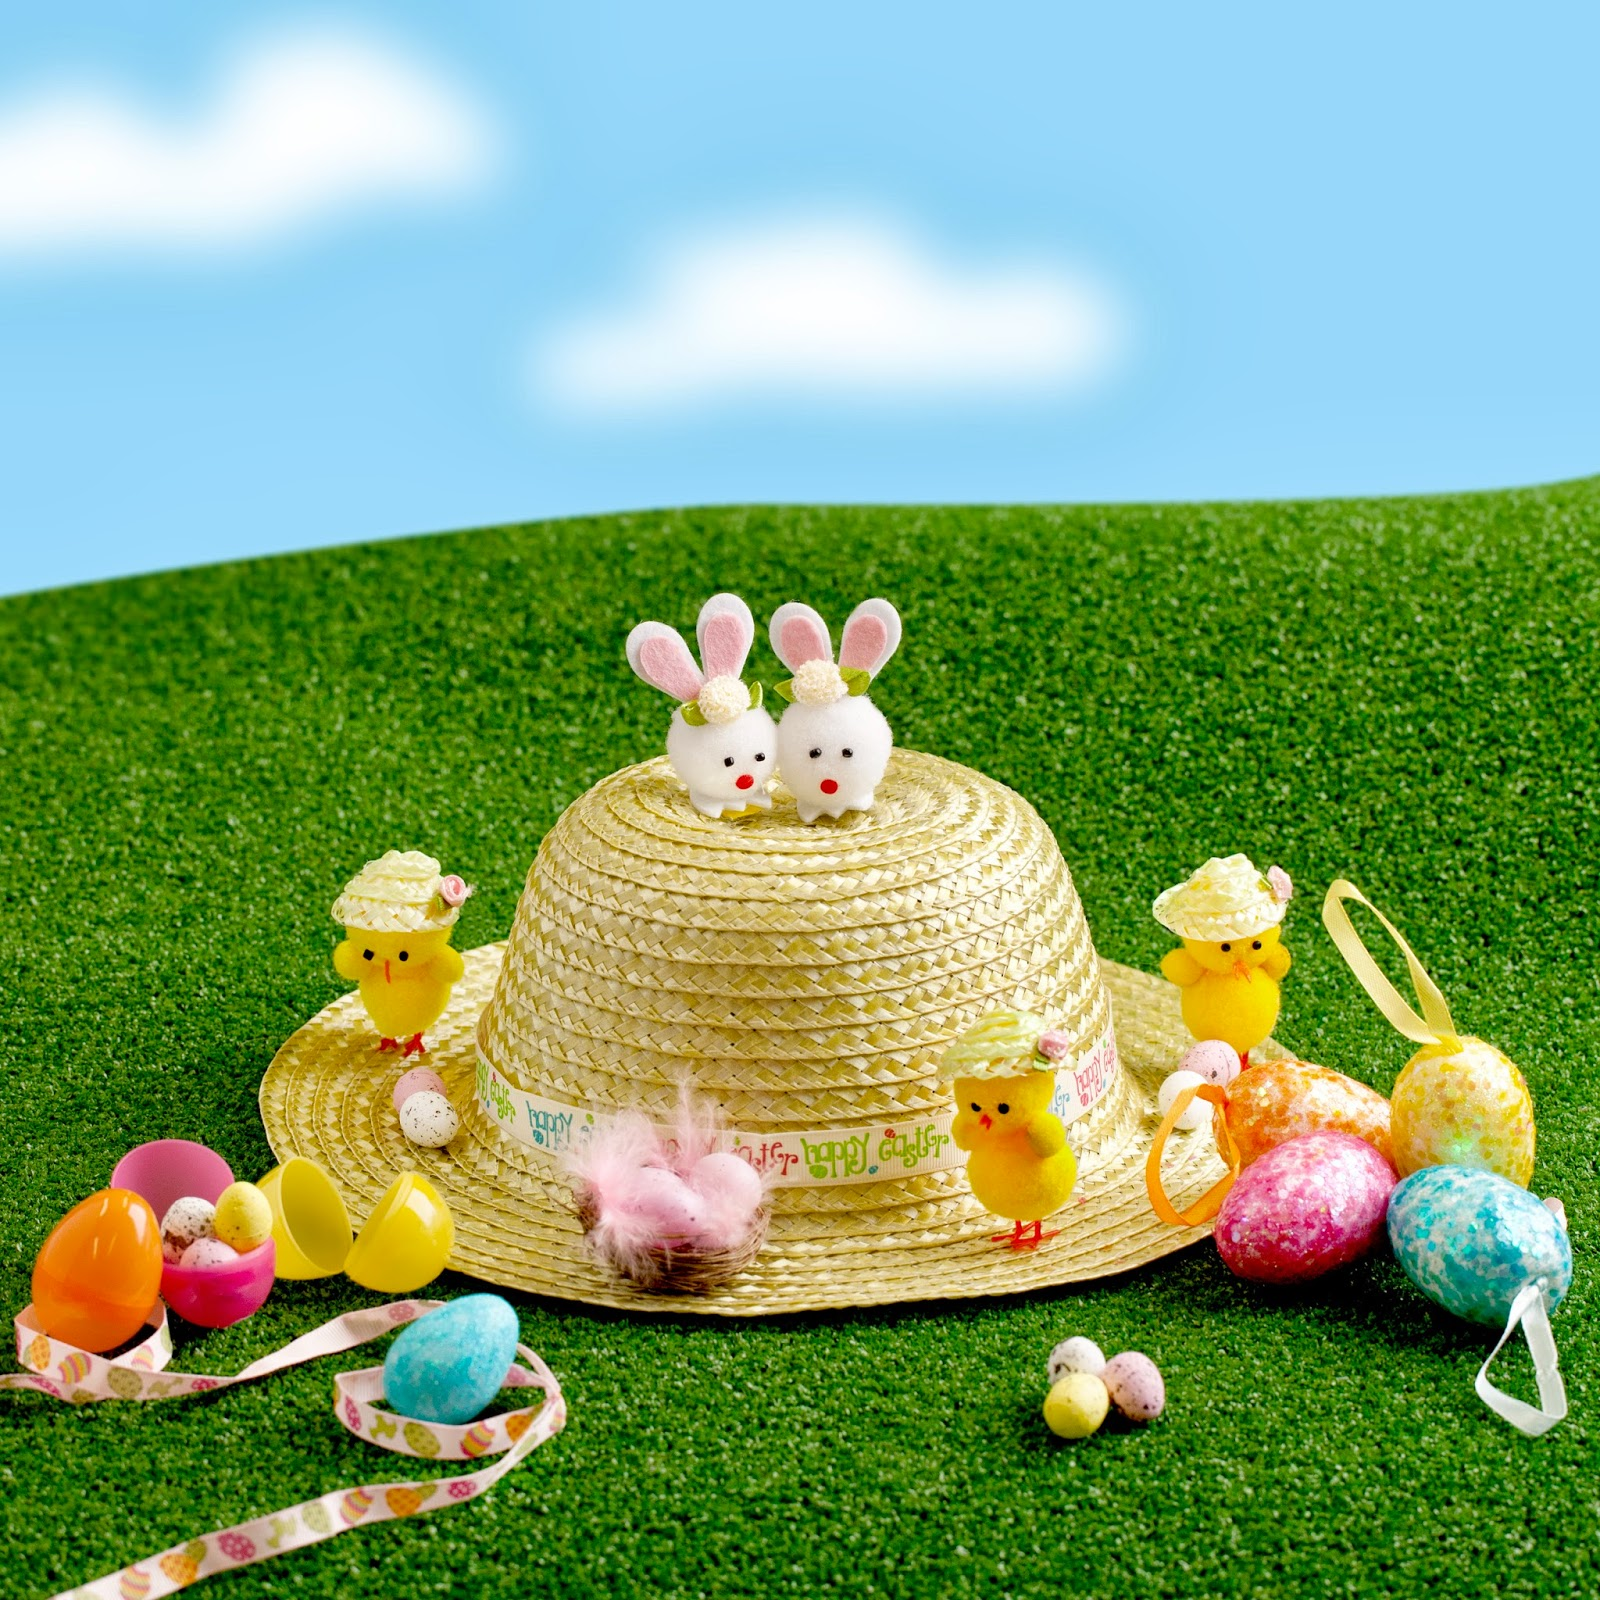 How To Decorate Easter Hats?